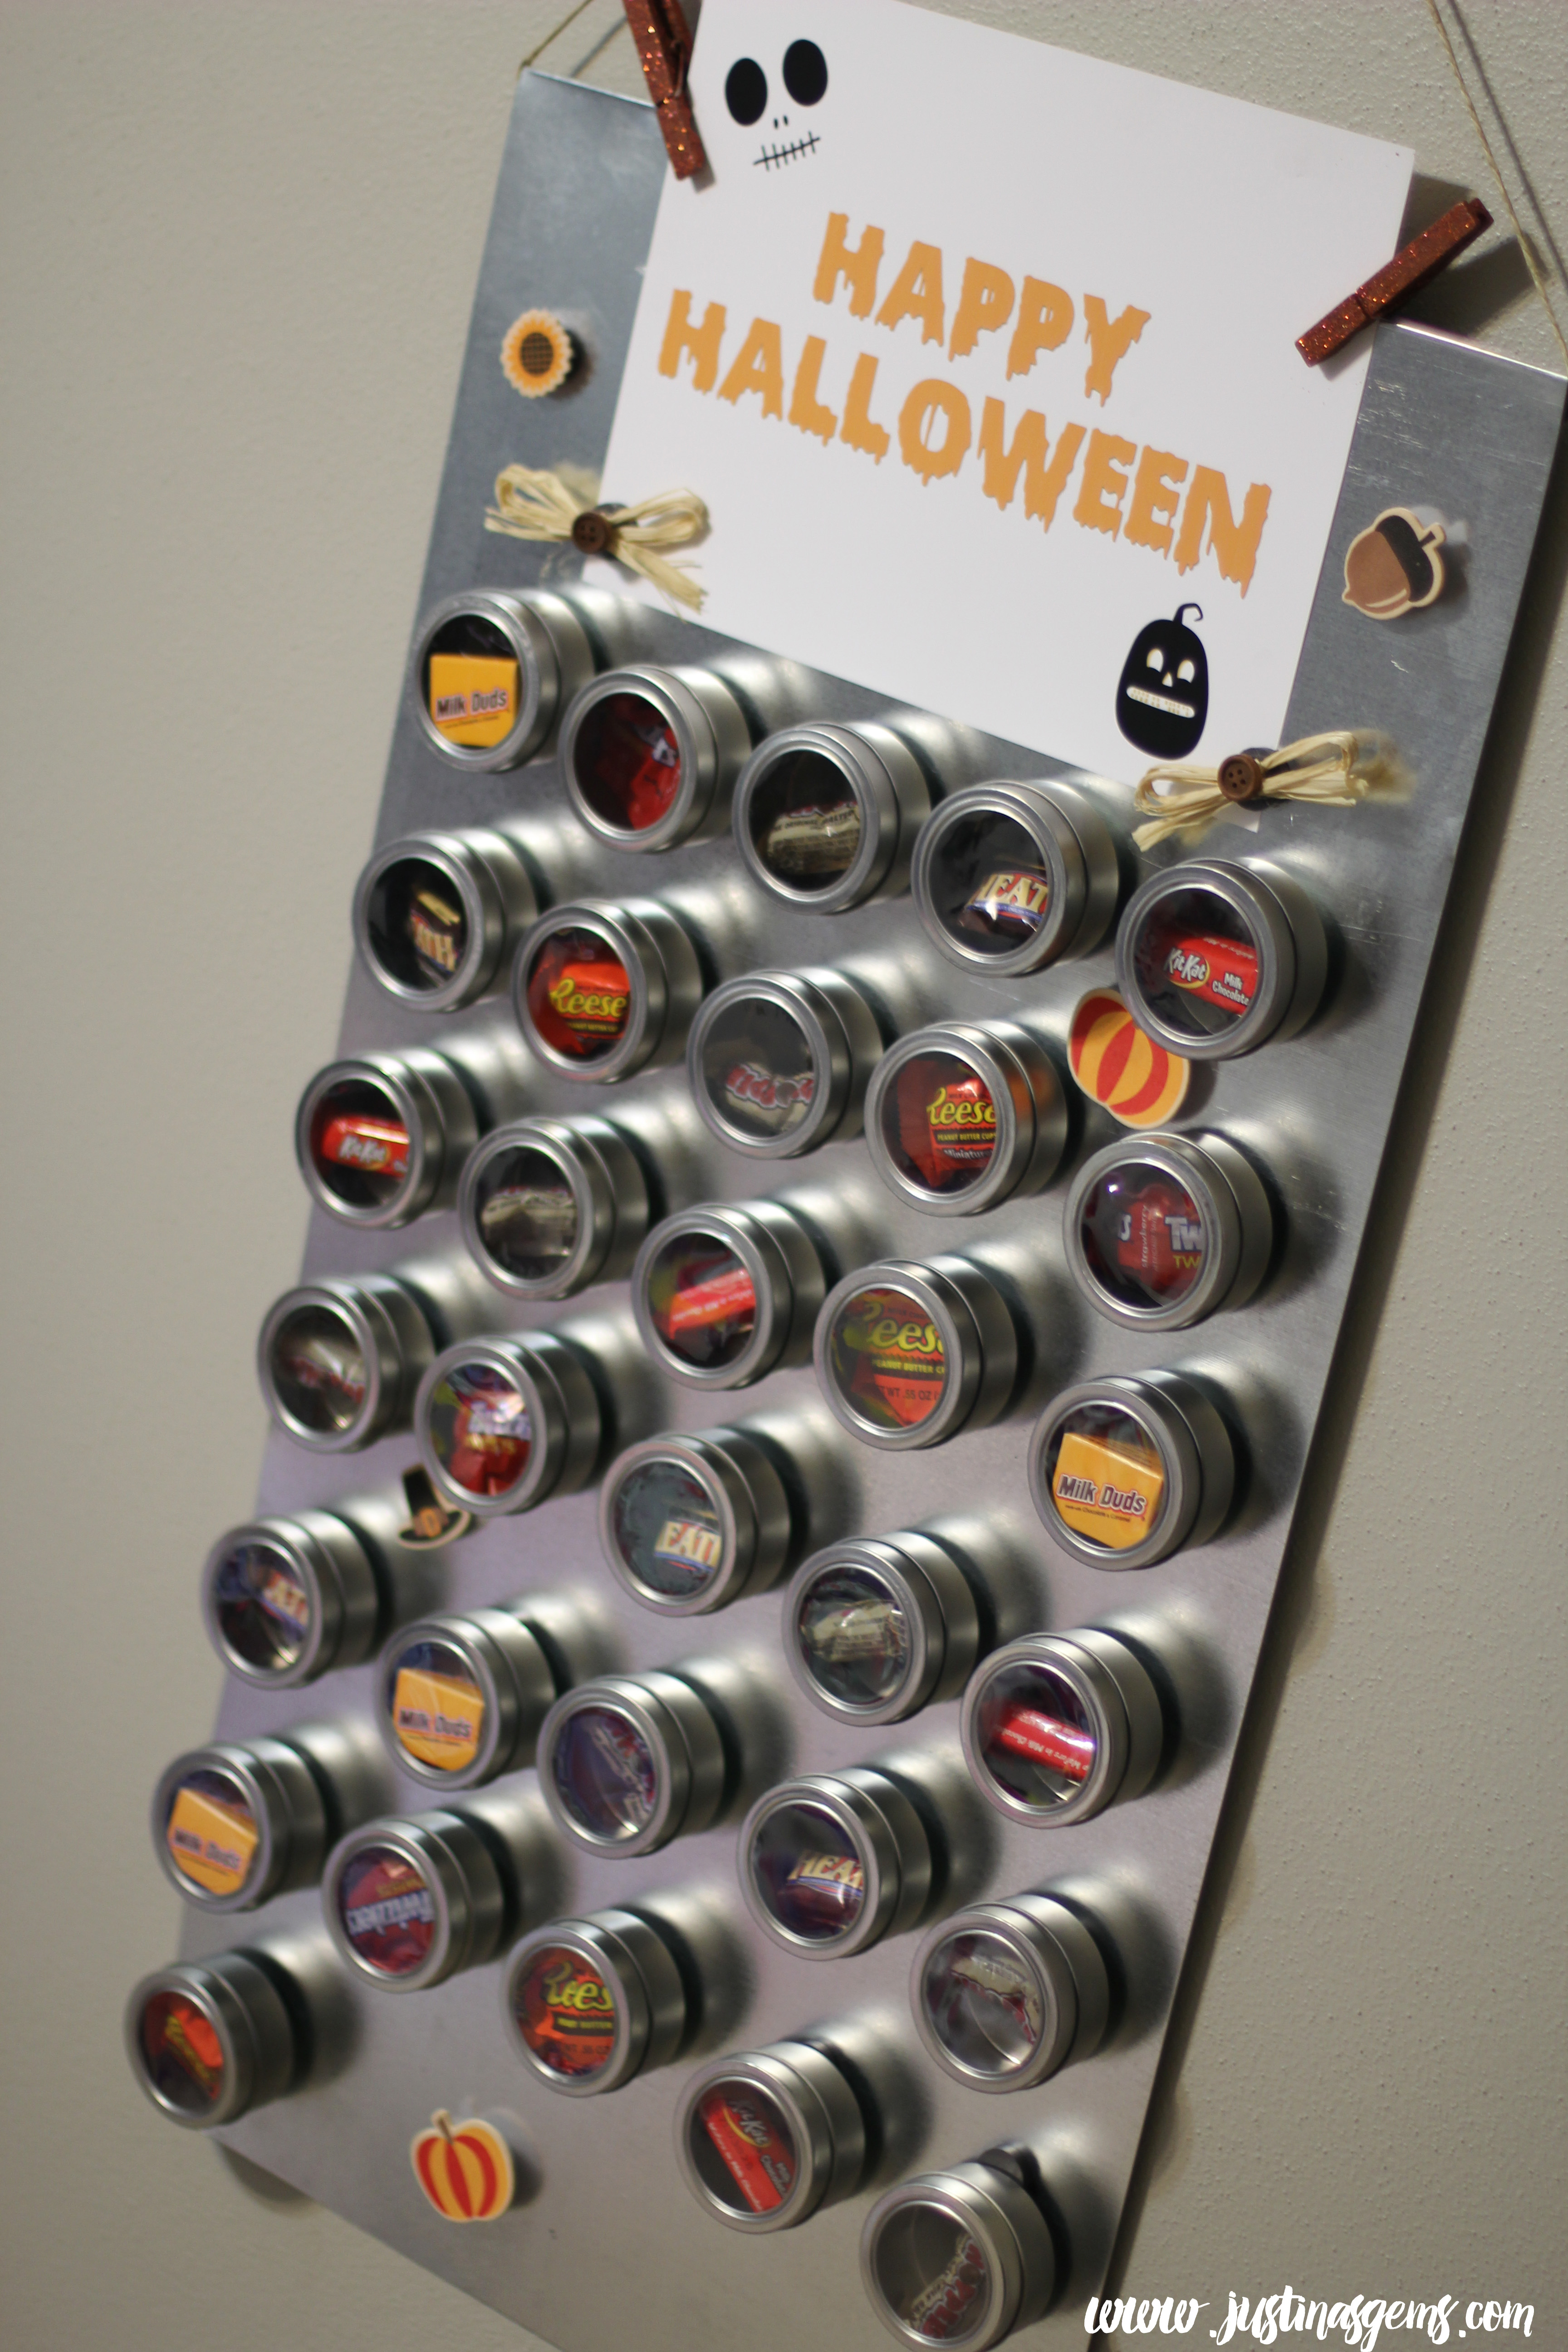 Diy halloween advent calendar justinas gems halloween advent calendar 2 halloween advent calendar diy solutioingenieria